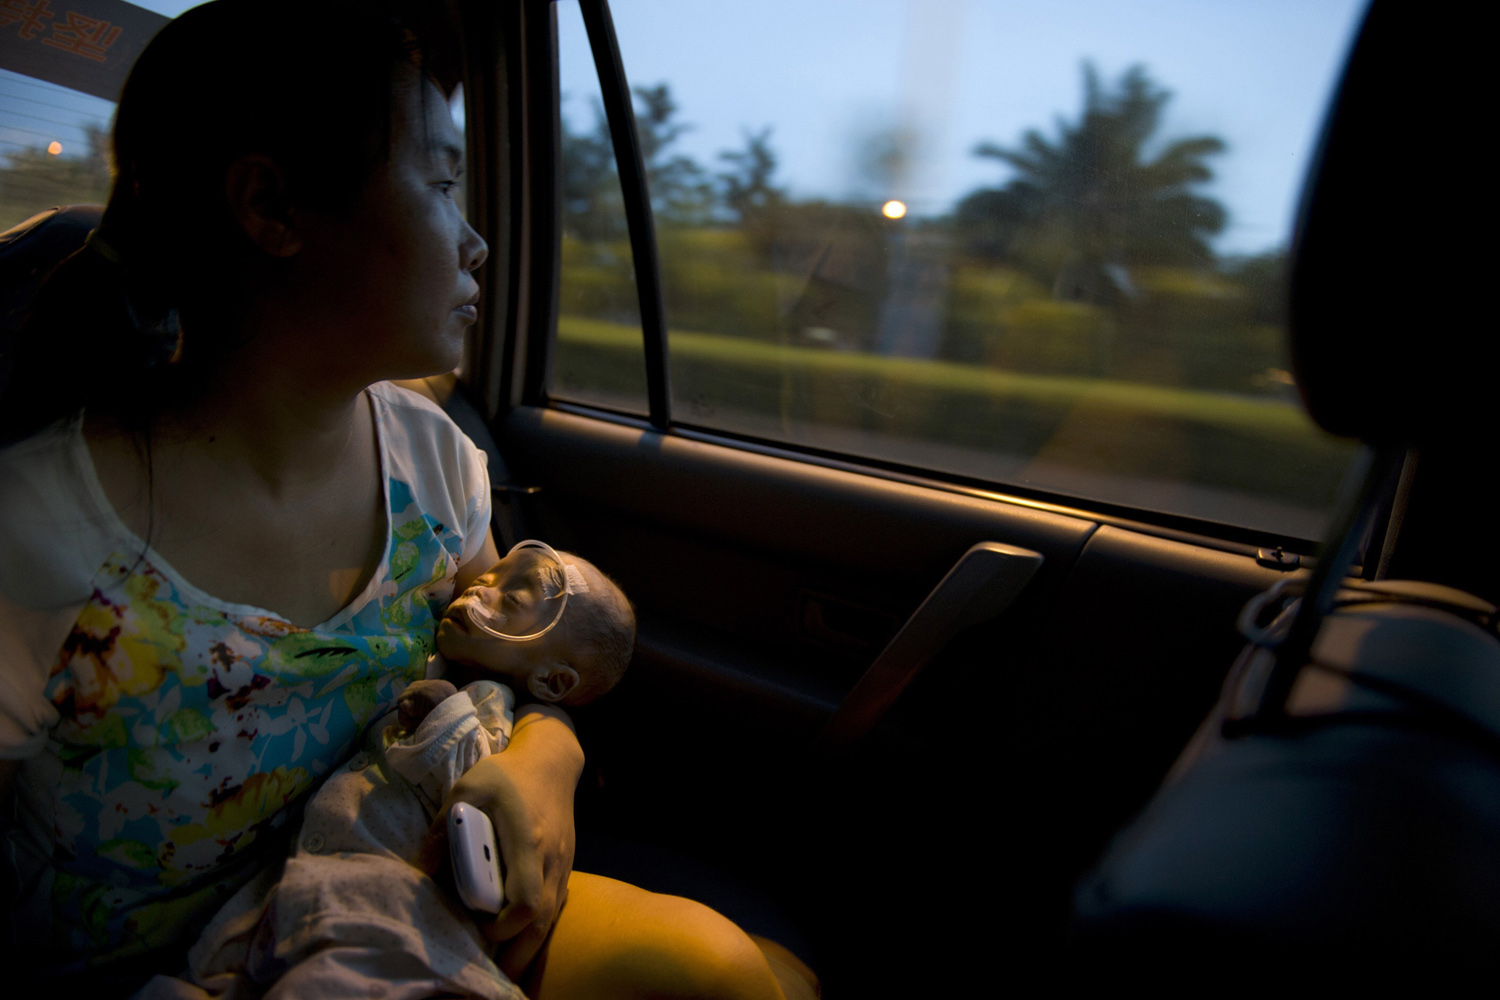 Aug. 30, 2014. Wu Lunjiao (L), holds her daughter Yuanyuan, who is suffering from an unknown disease, as she looks out of the window on a taxi in Shenzhen, Guangdong province.